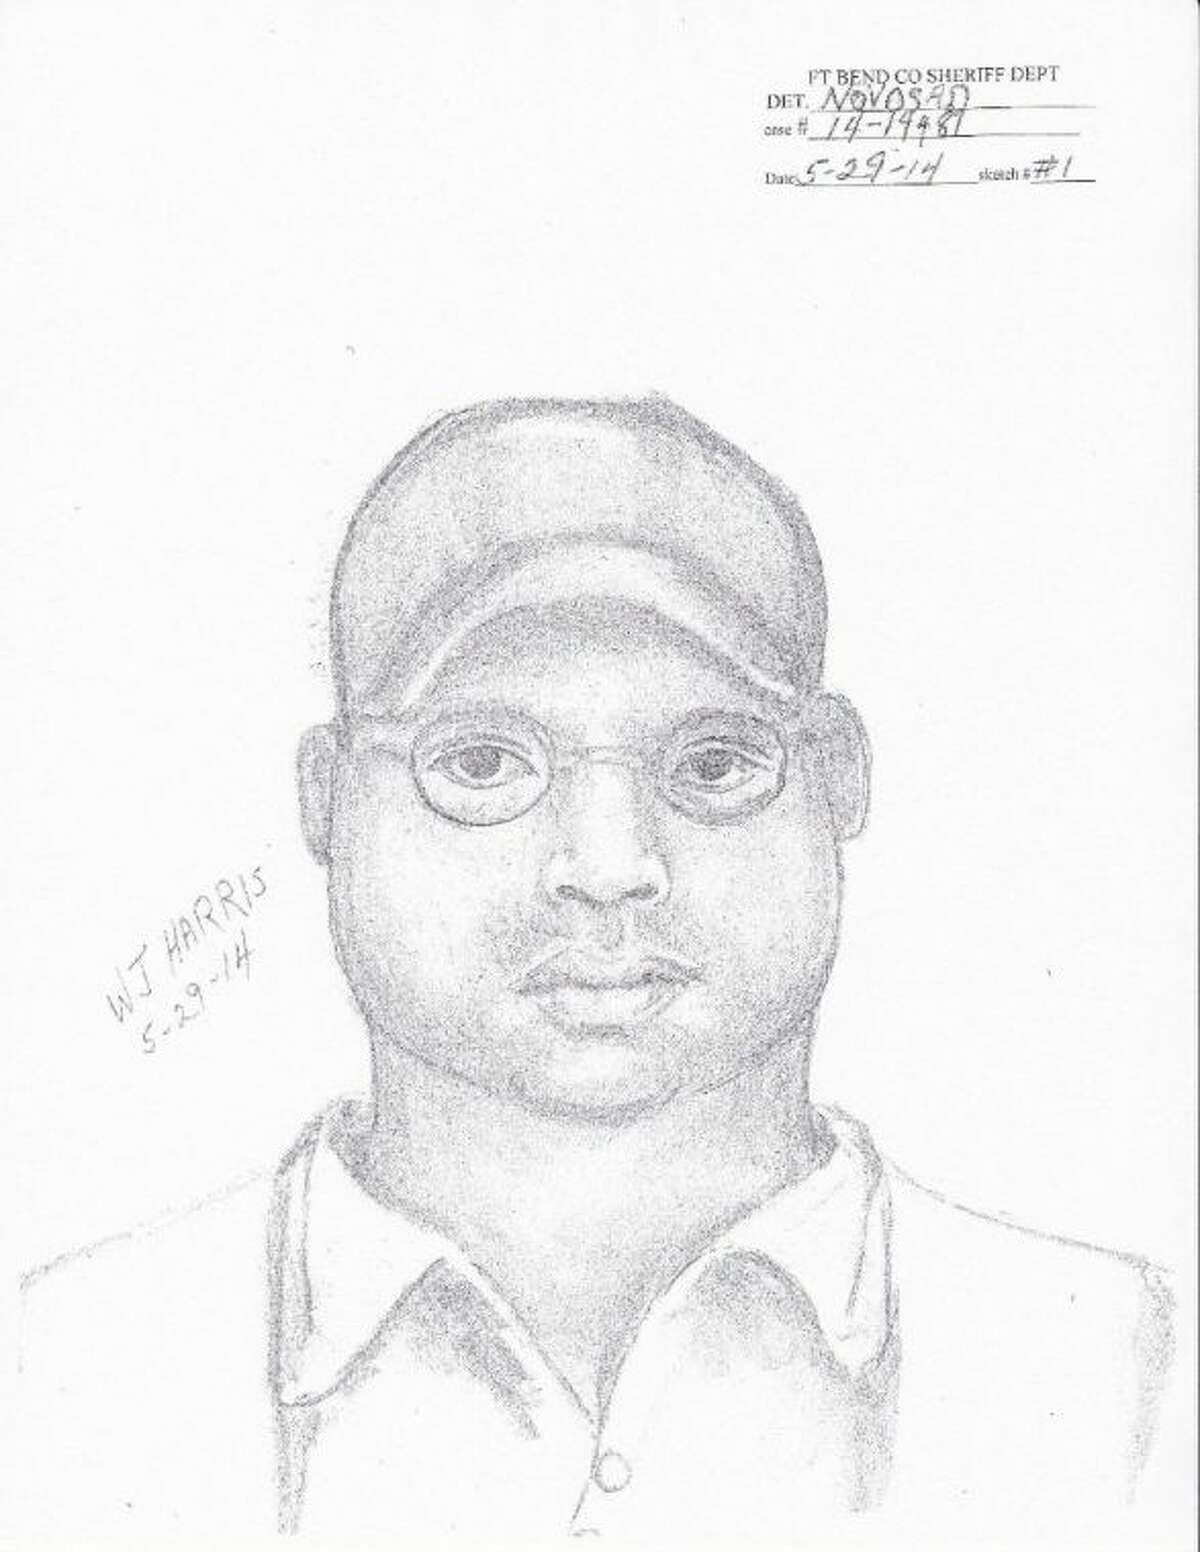 A composite sketch of one of the three suspects wanted for an aggravated robbery/home invasion in Fort Bend on Sunday, May 25.